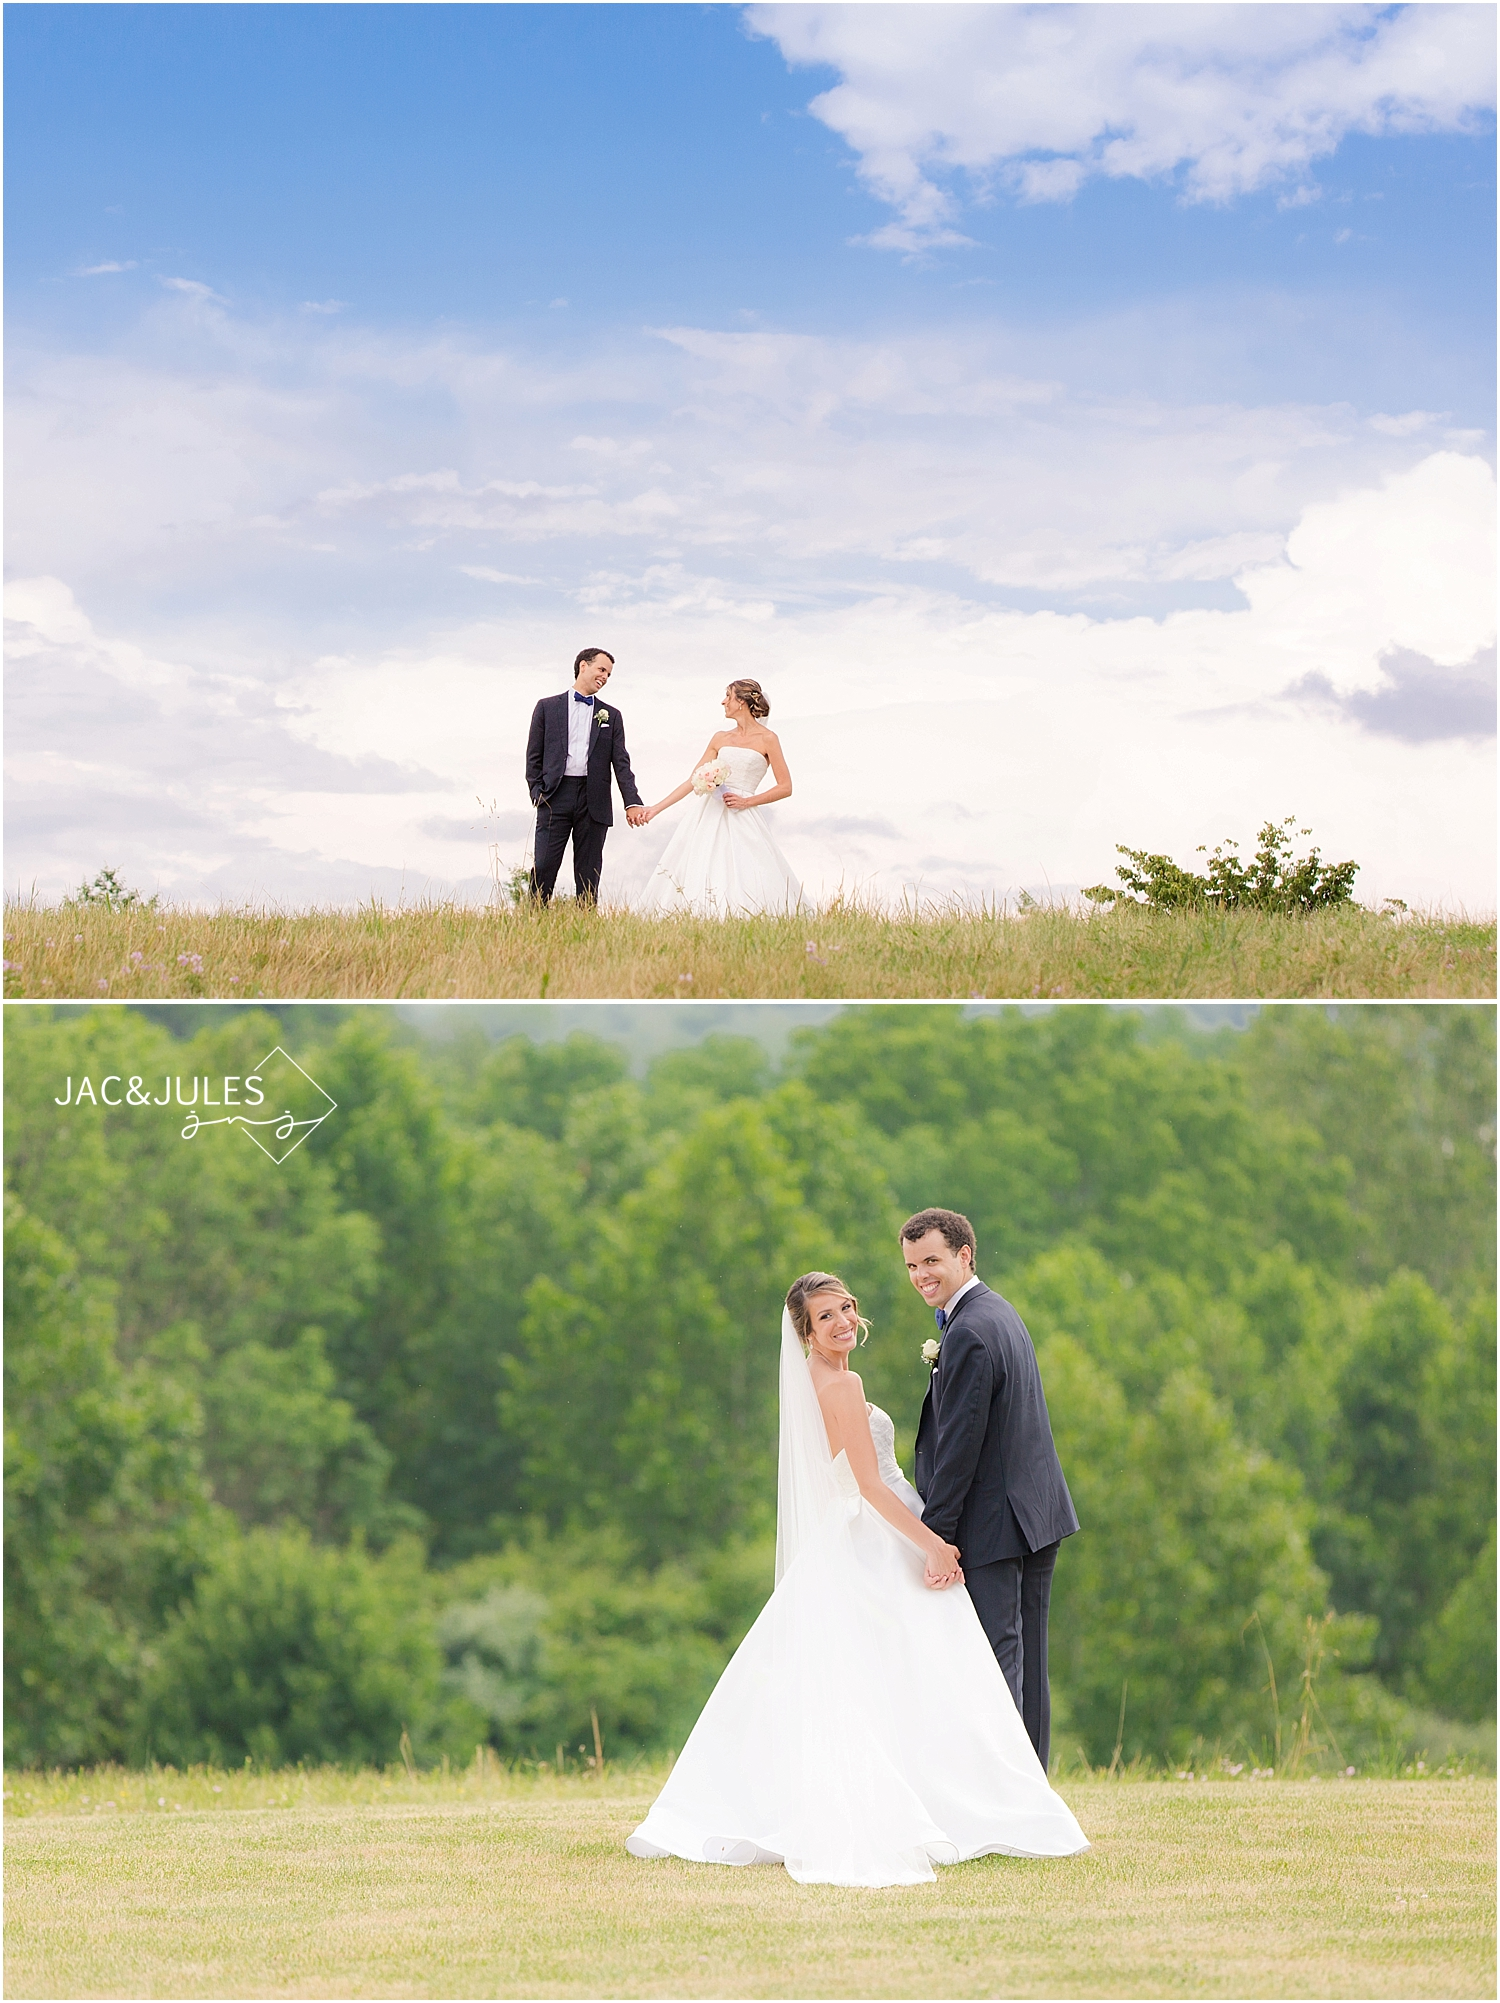 jacnjules photographs bride and groom portraits at immaculate conception in annandale nj